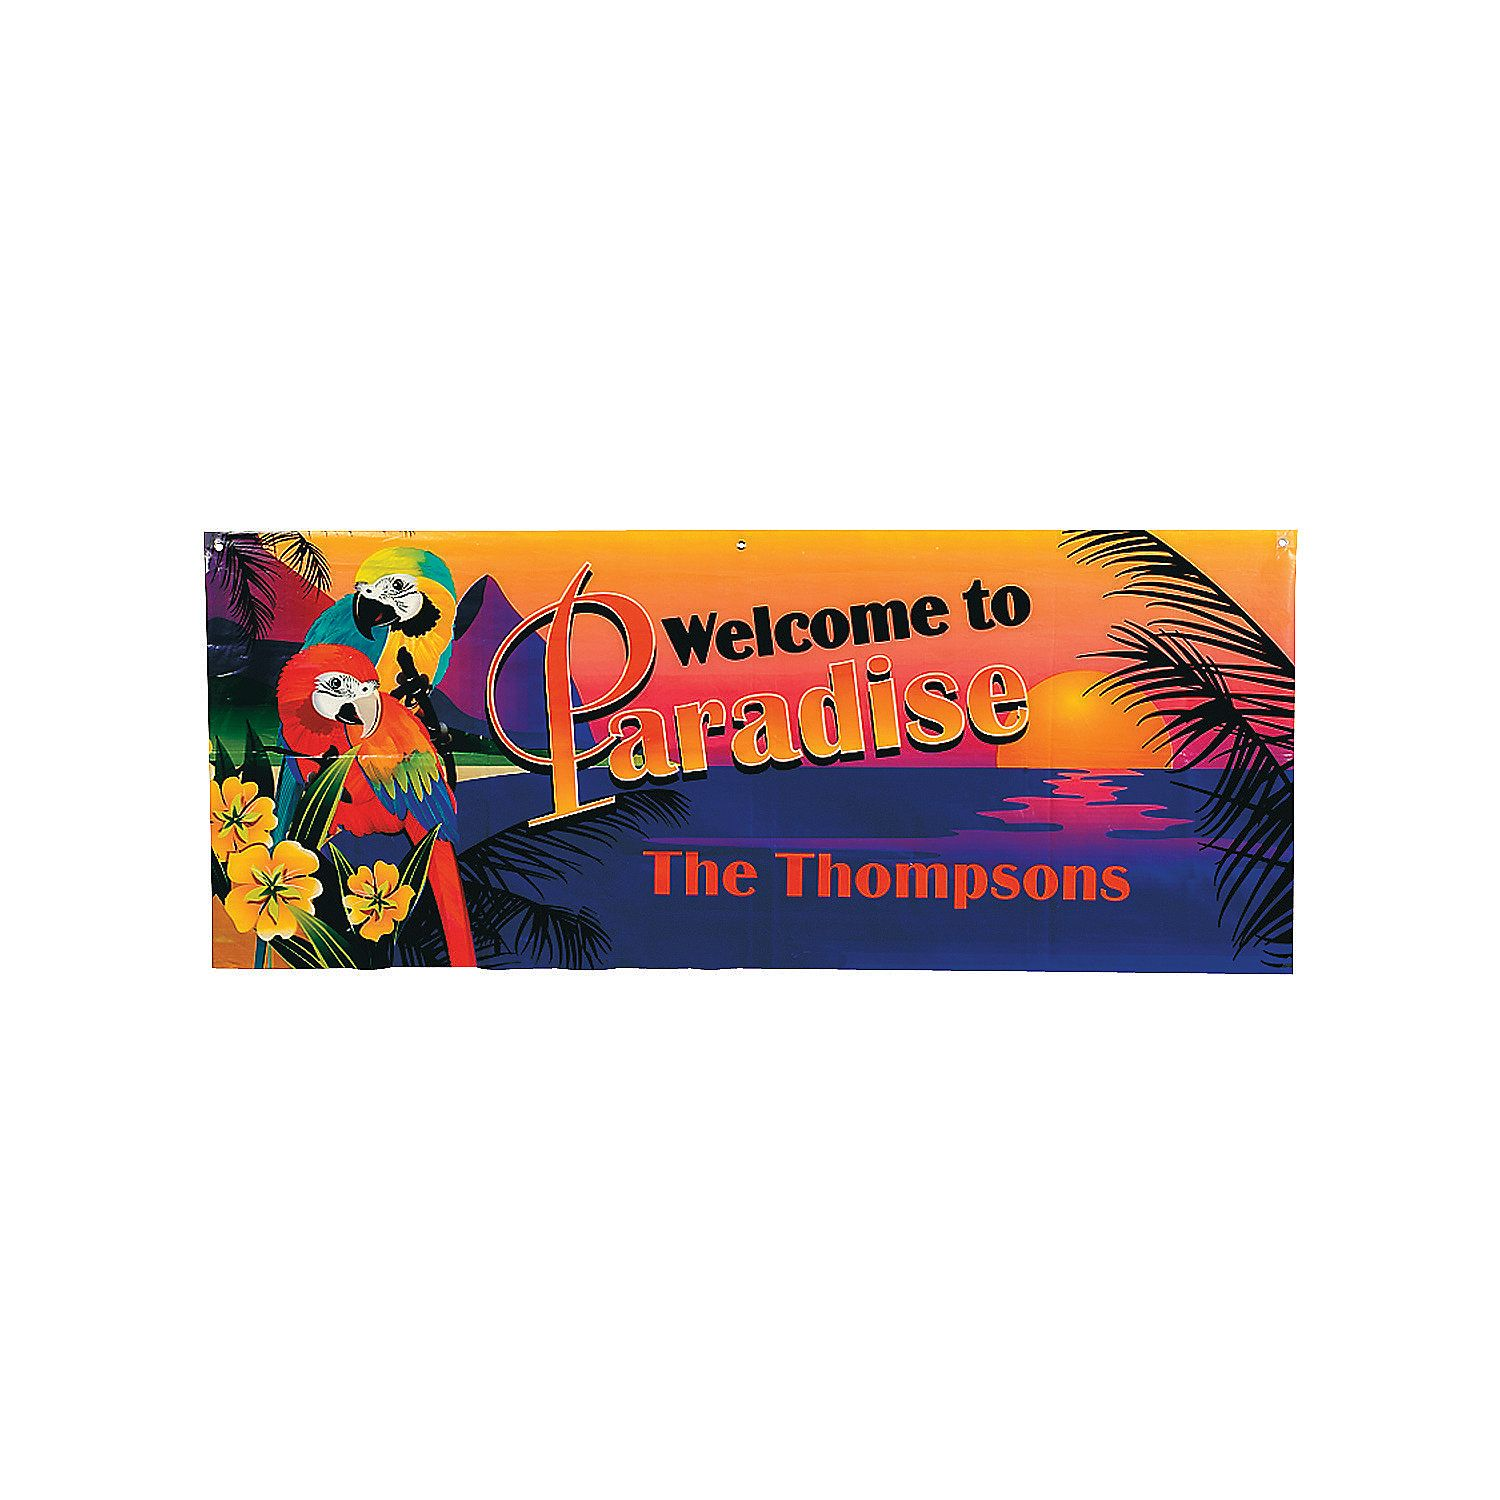 """Personalized Luau Parrot Banner - Small. Amidst the beauty of a tropical sunset, our pair of tropical luau parrots offer your guests a warm greeting. Customize this banner with your own unique message, name or date! 50"""" x 20"""" Personalize for free!- Quality vinyl banner with adhesive tabs for hanging - Printed in orange lettering  - Personalize with 1 line of textPersonalized Example:- Welcome to - Paradise - Line 1 - 18 characters (example: The Thompsons) Banner printed on 10 oz. white…"""